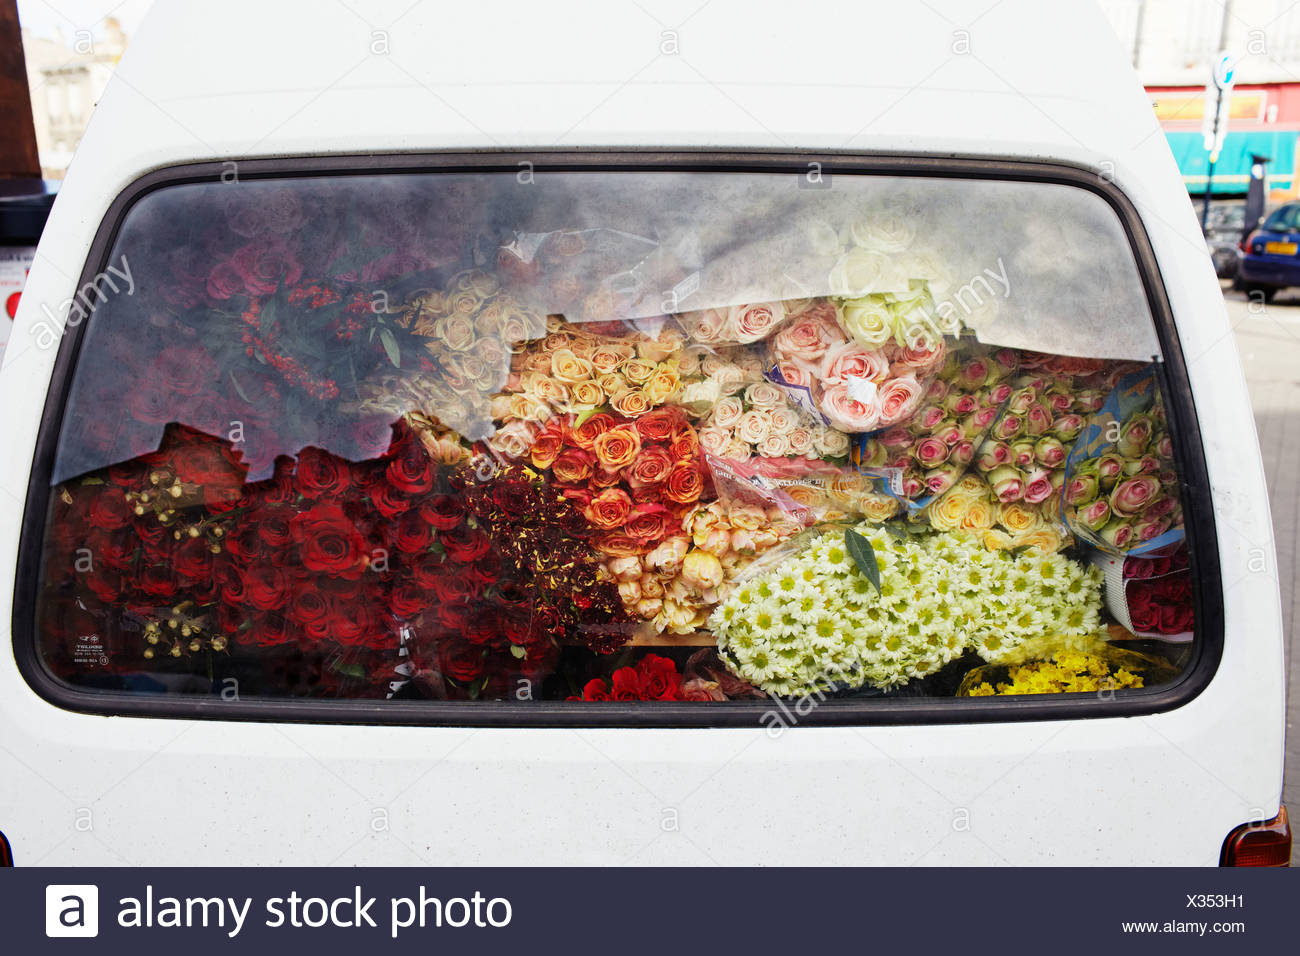 Flowers in car boot - Stock Image